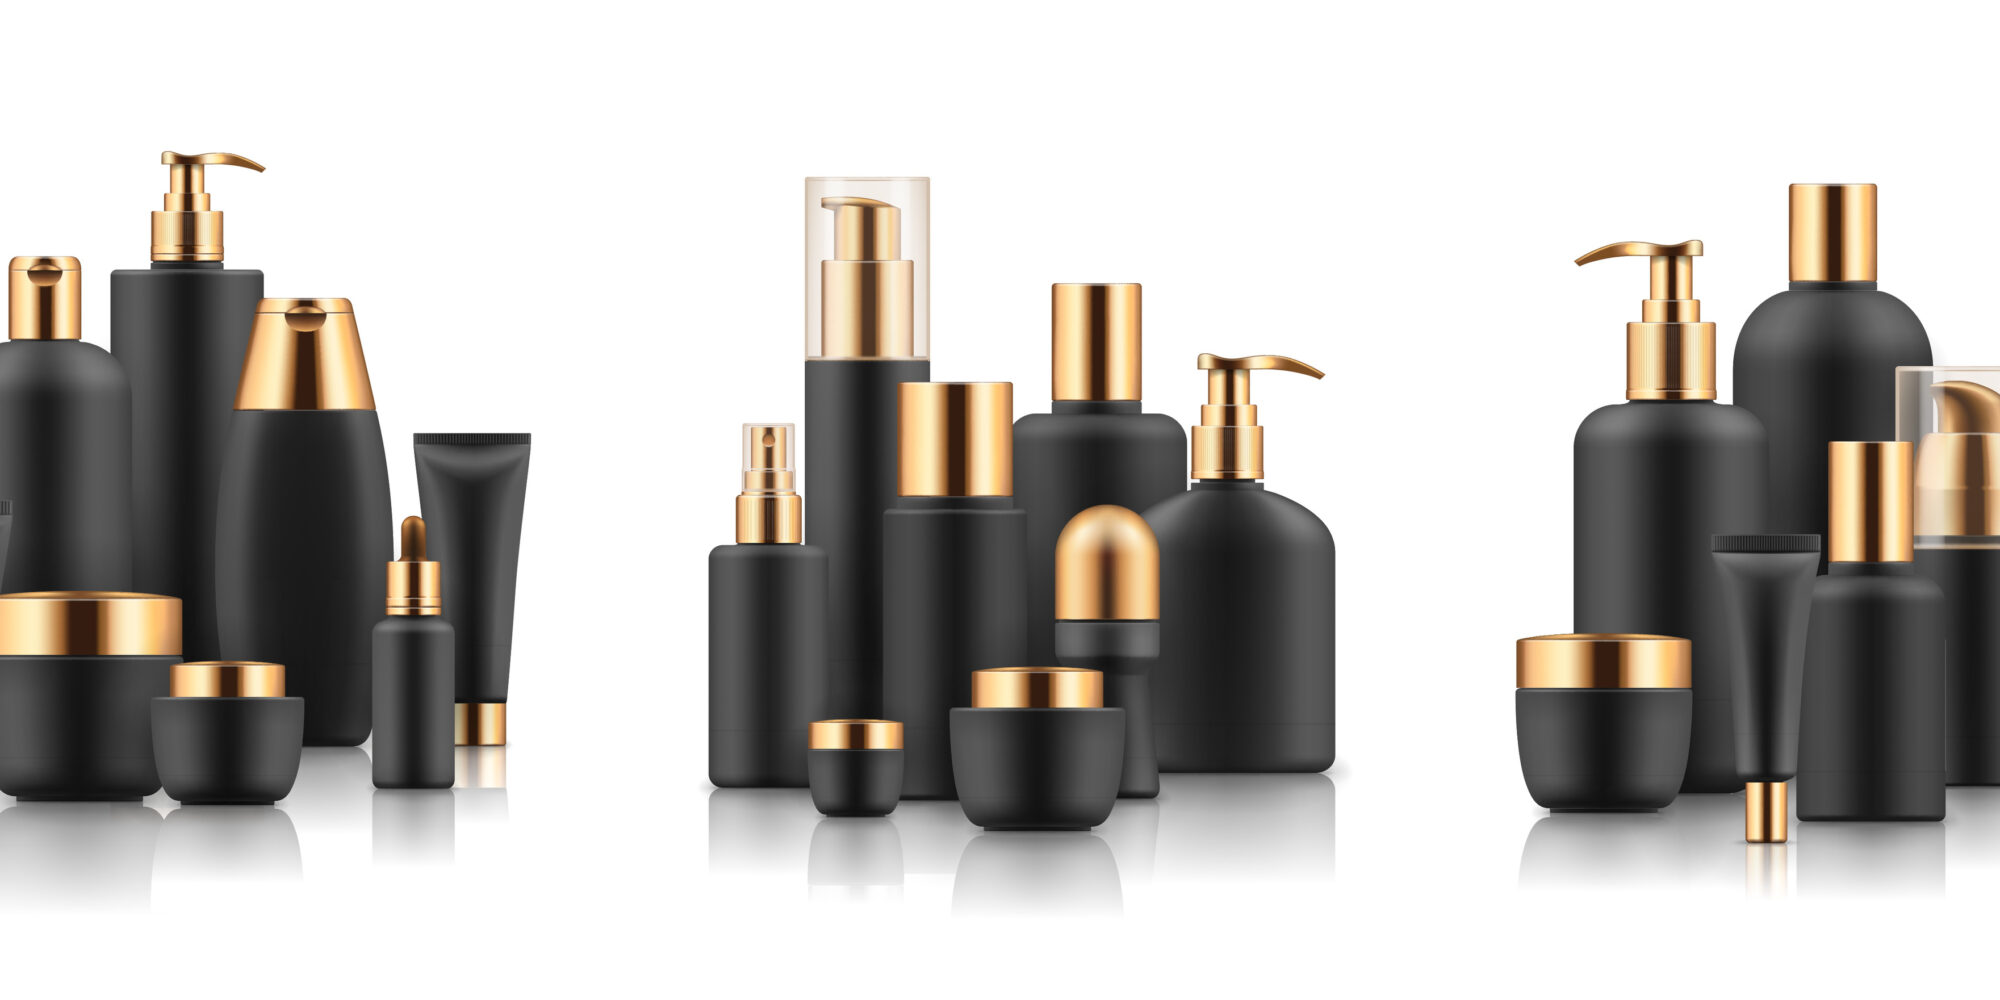 As Sustainability Efforts Increase, Should The Beauty Industry Rethink The Flood Of New Products?